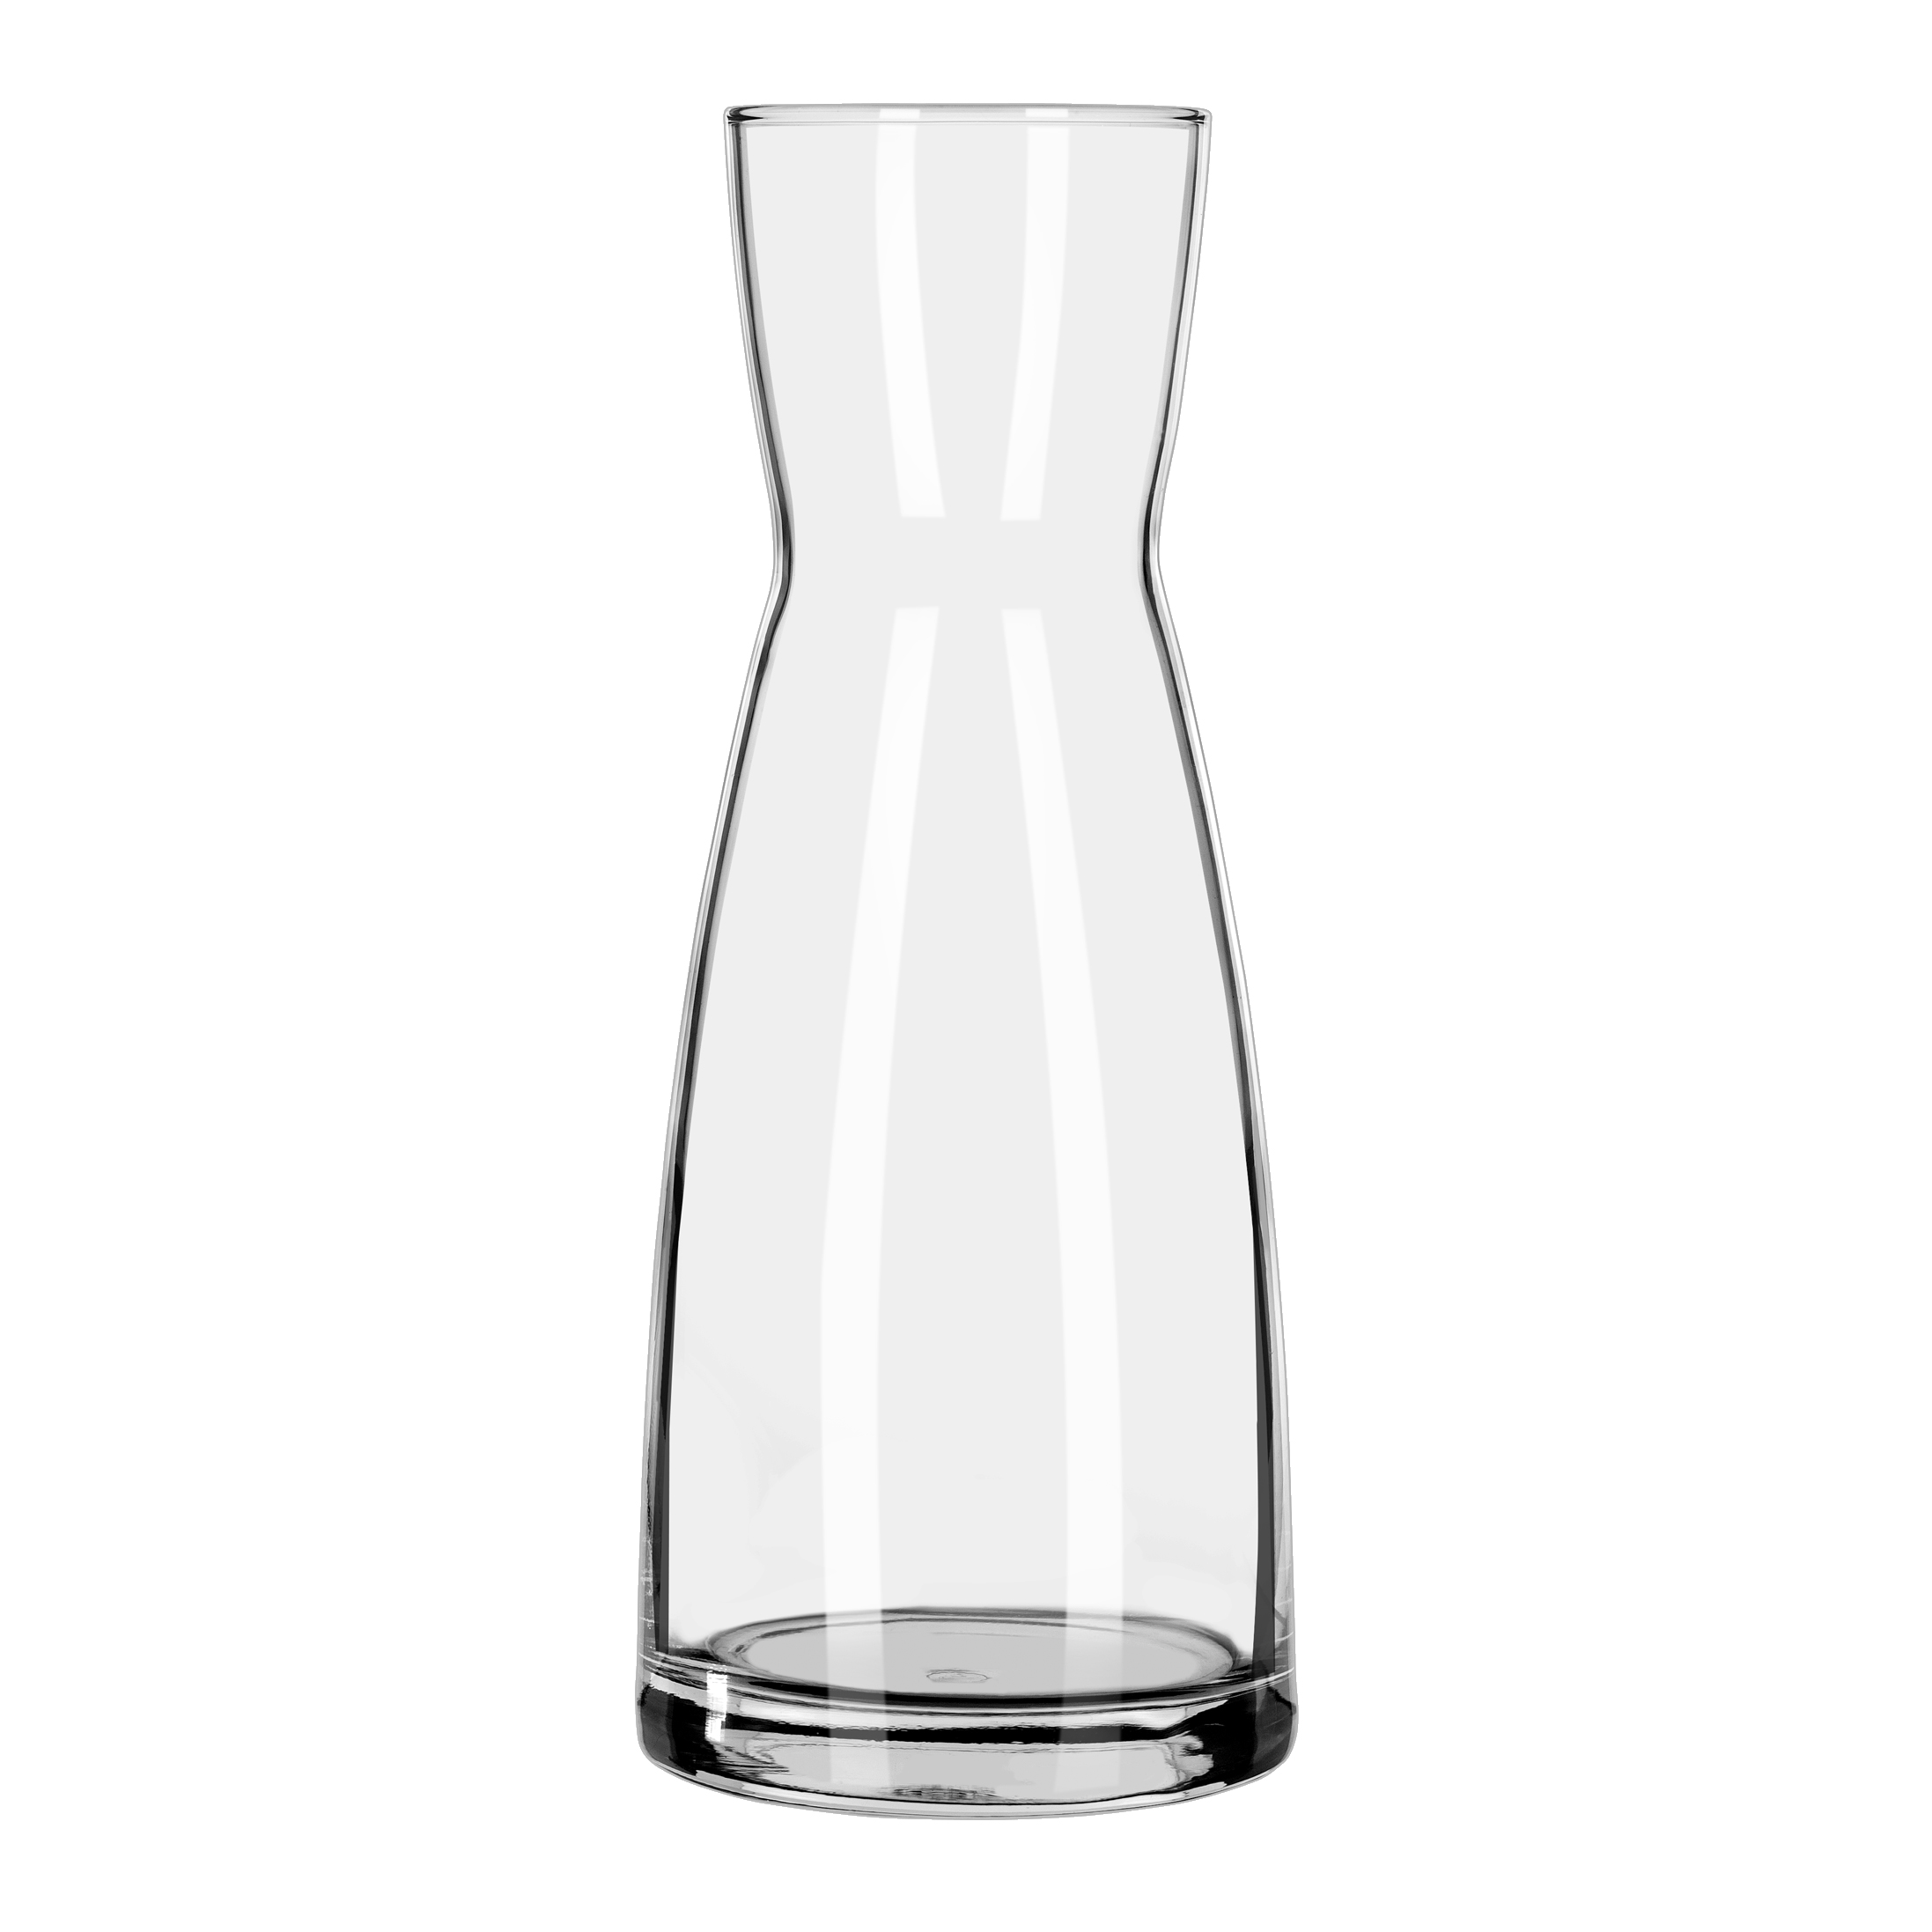 Libbey Glass 701 decanter carafe